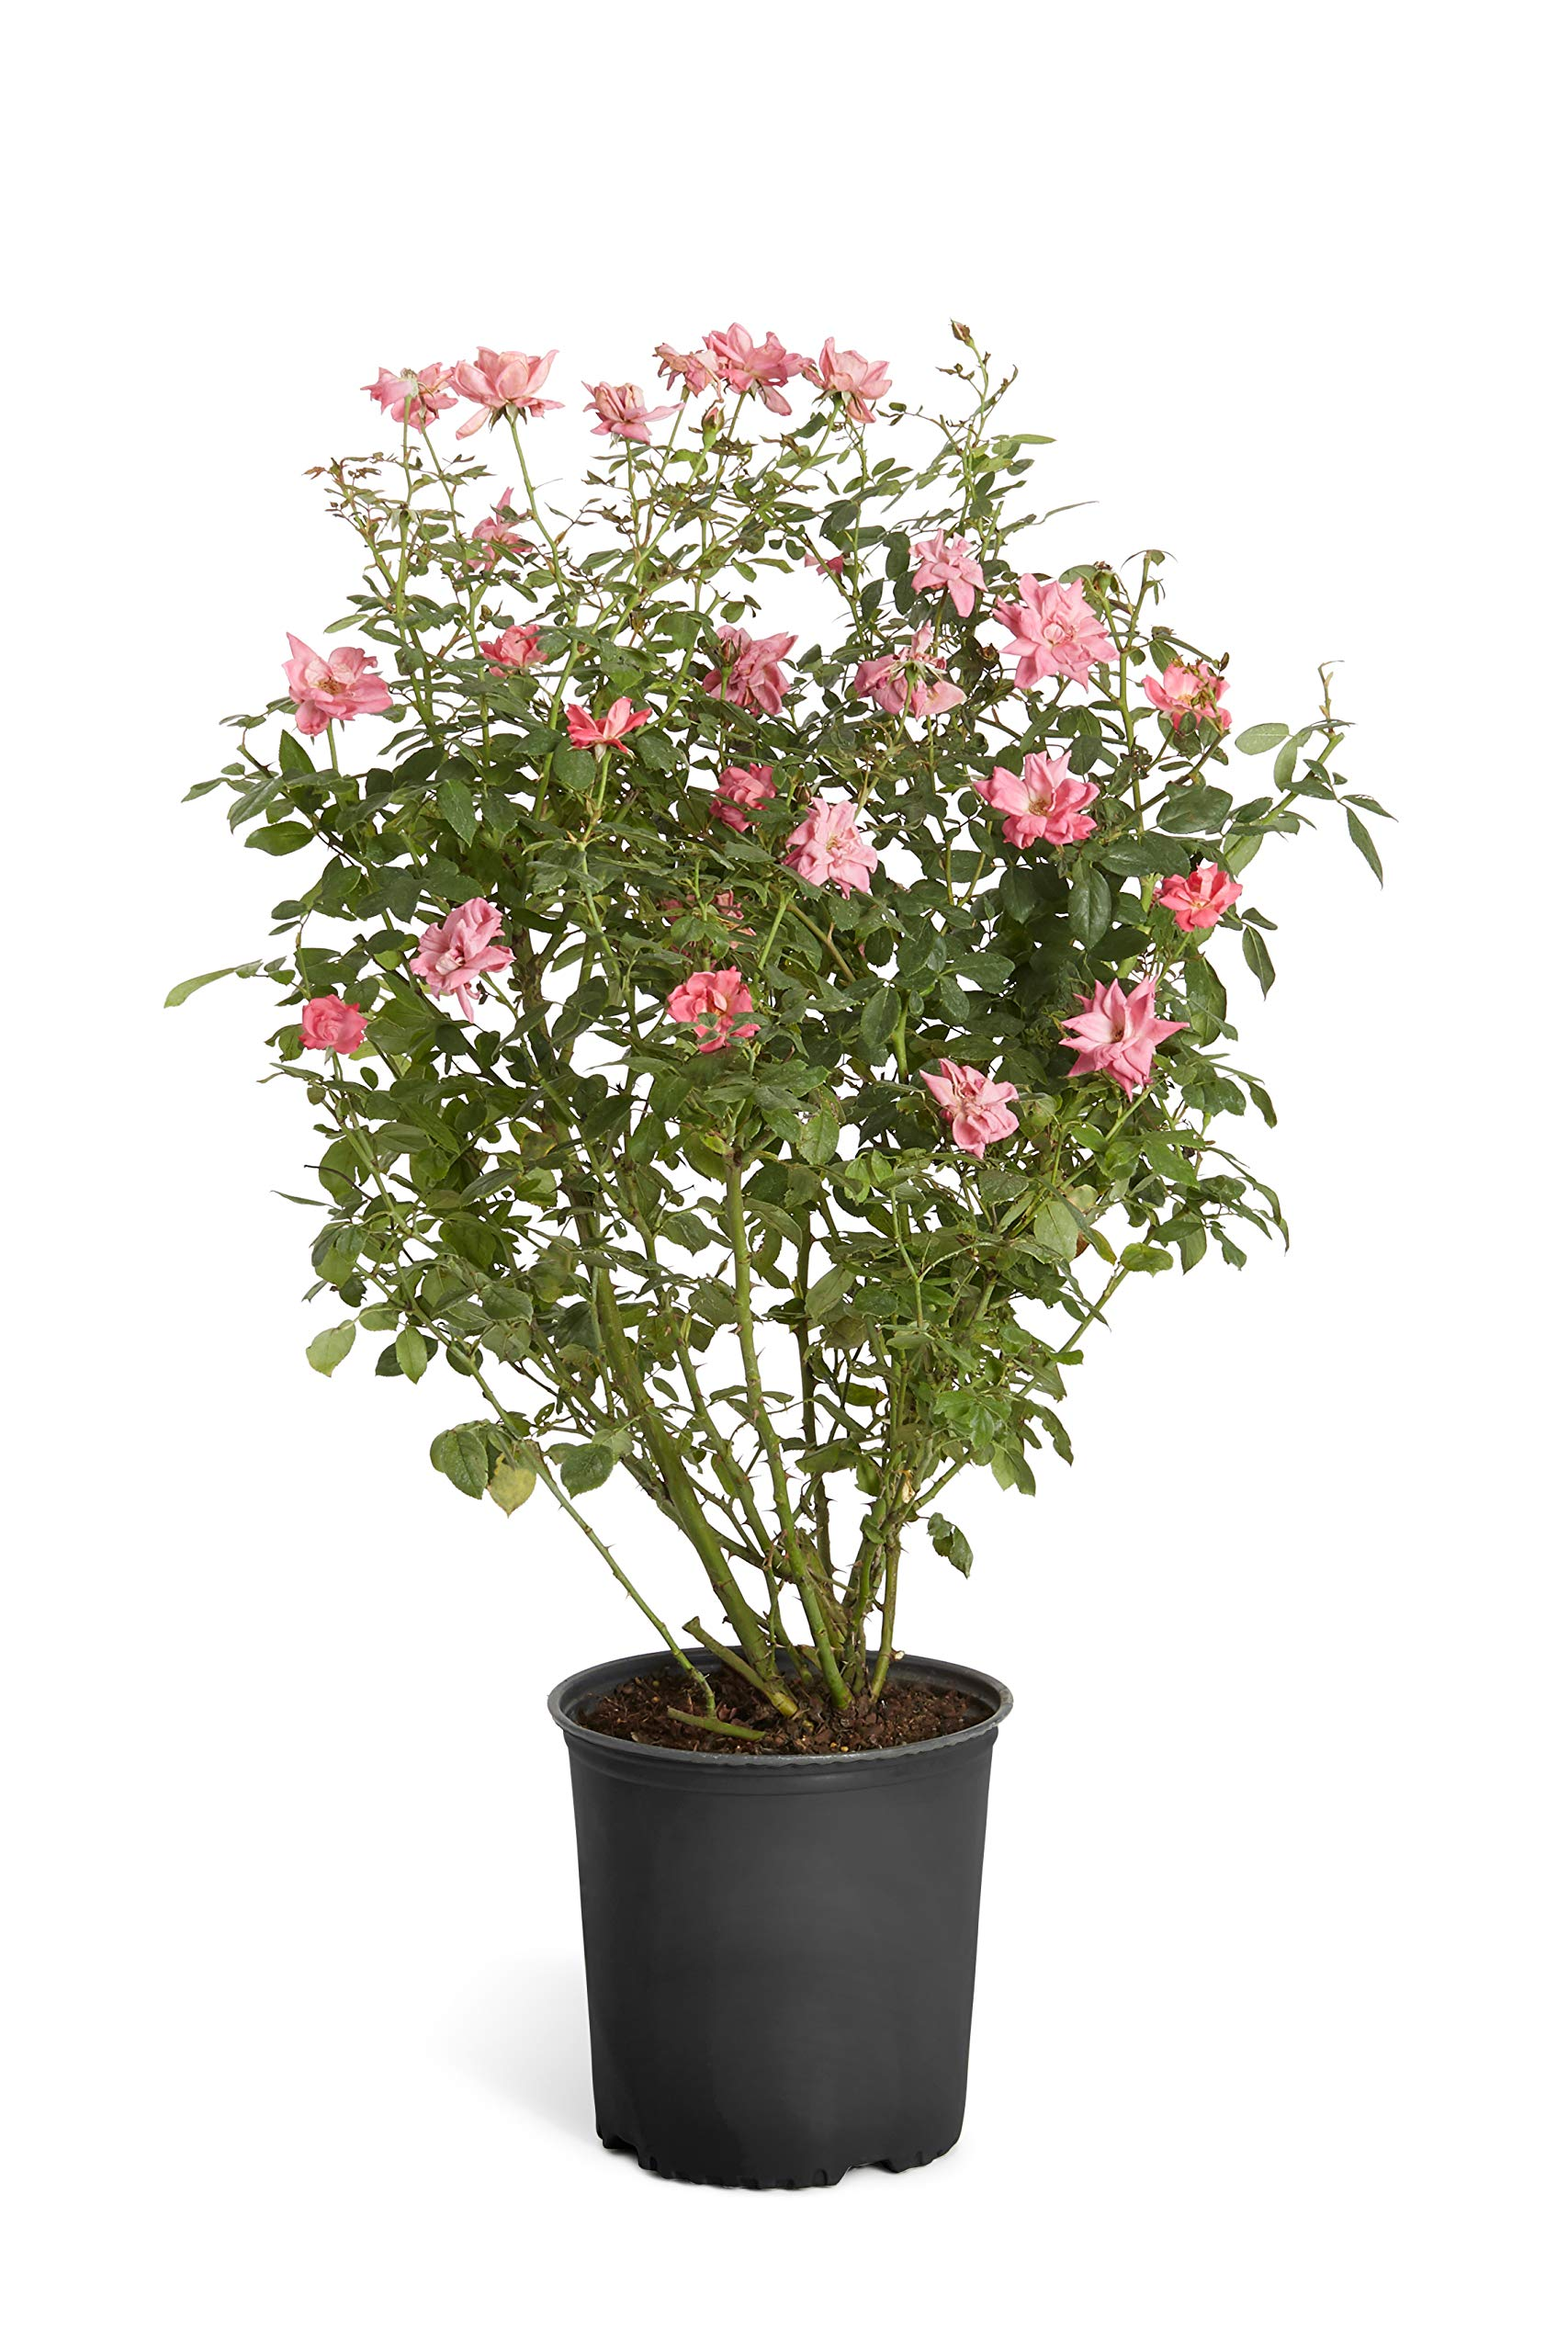 Double Pink Knock Out Rose - 2 Gallon Shrub - Developed Plants for Instant Blooms, Not Tiny Quarts, Seedlings or Seeds | Cannot Ship to AZ